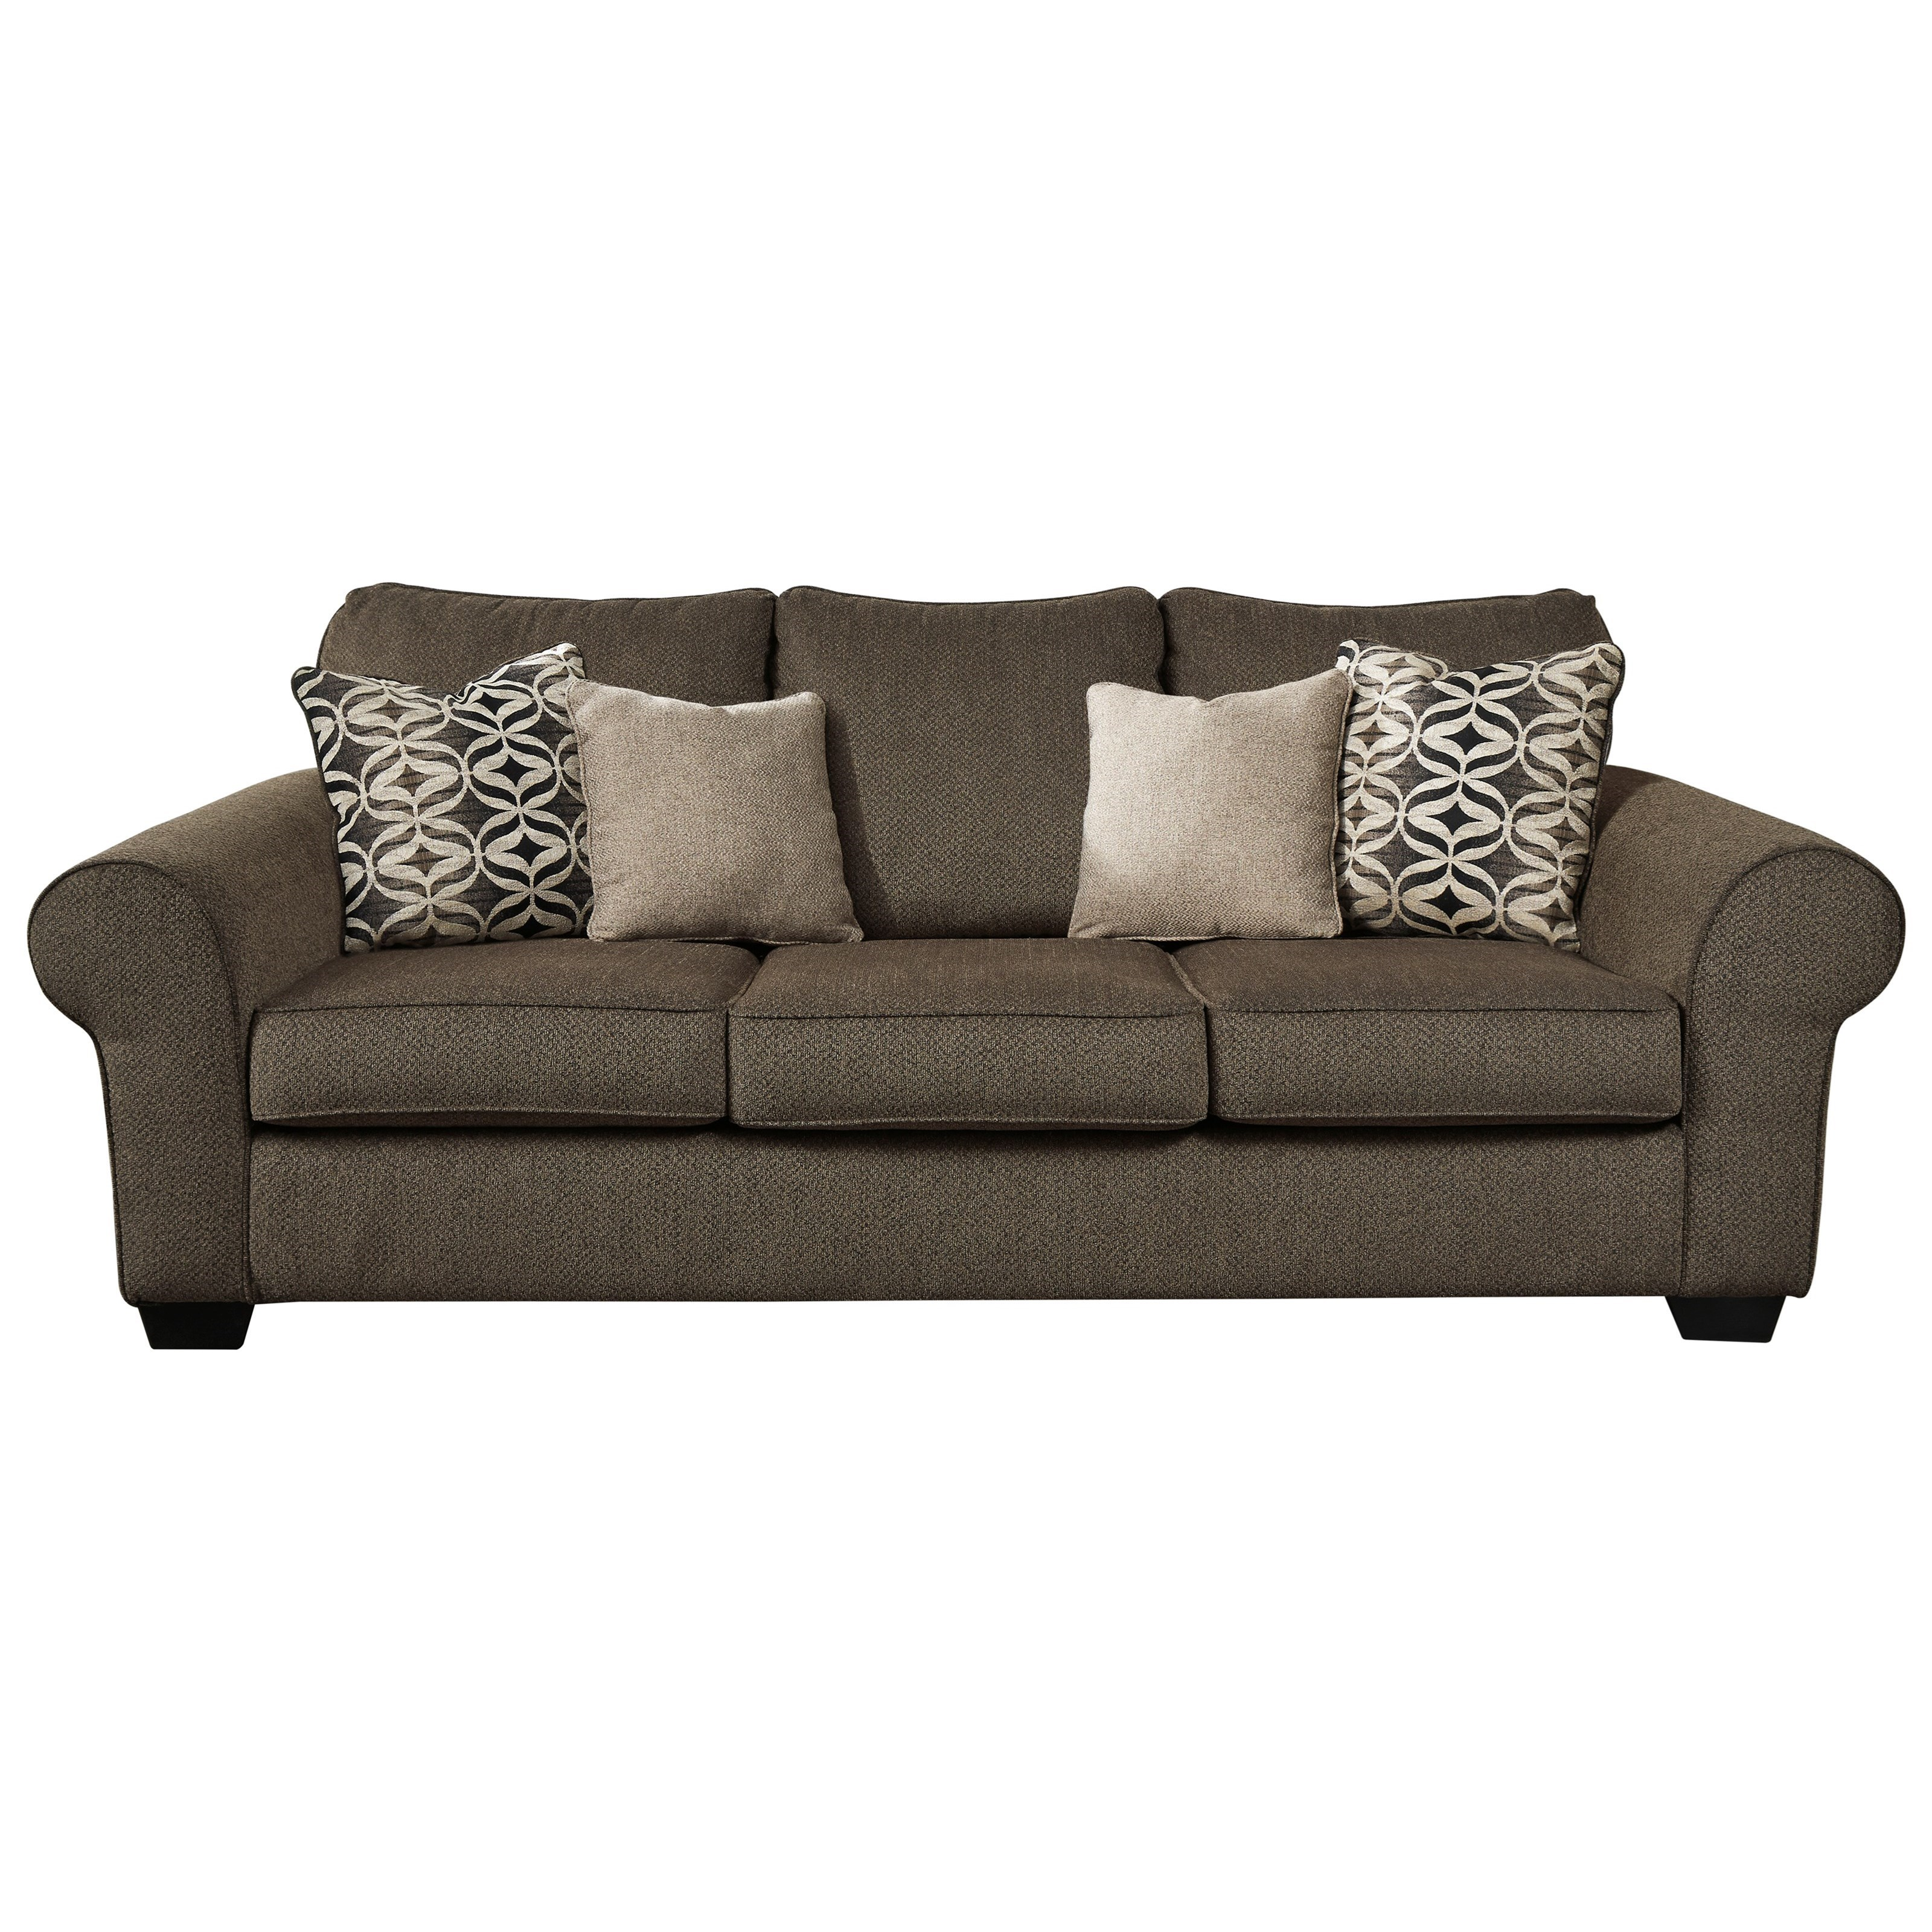 Nesso Sofa by Benchcraft at Beck's Furniture